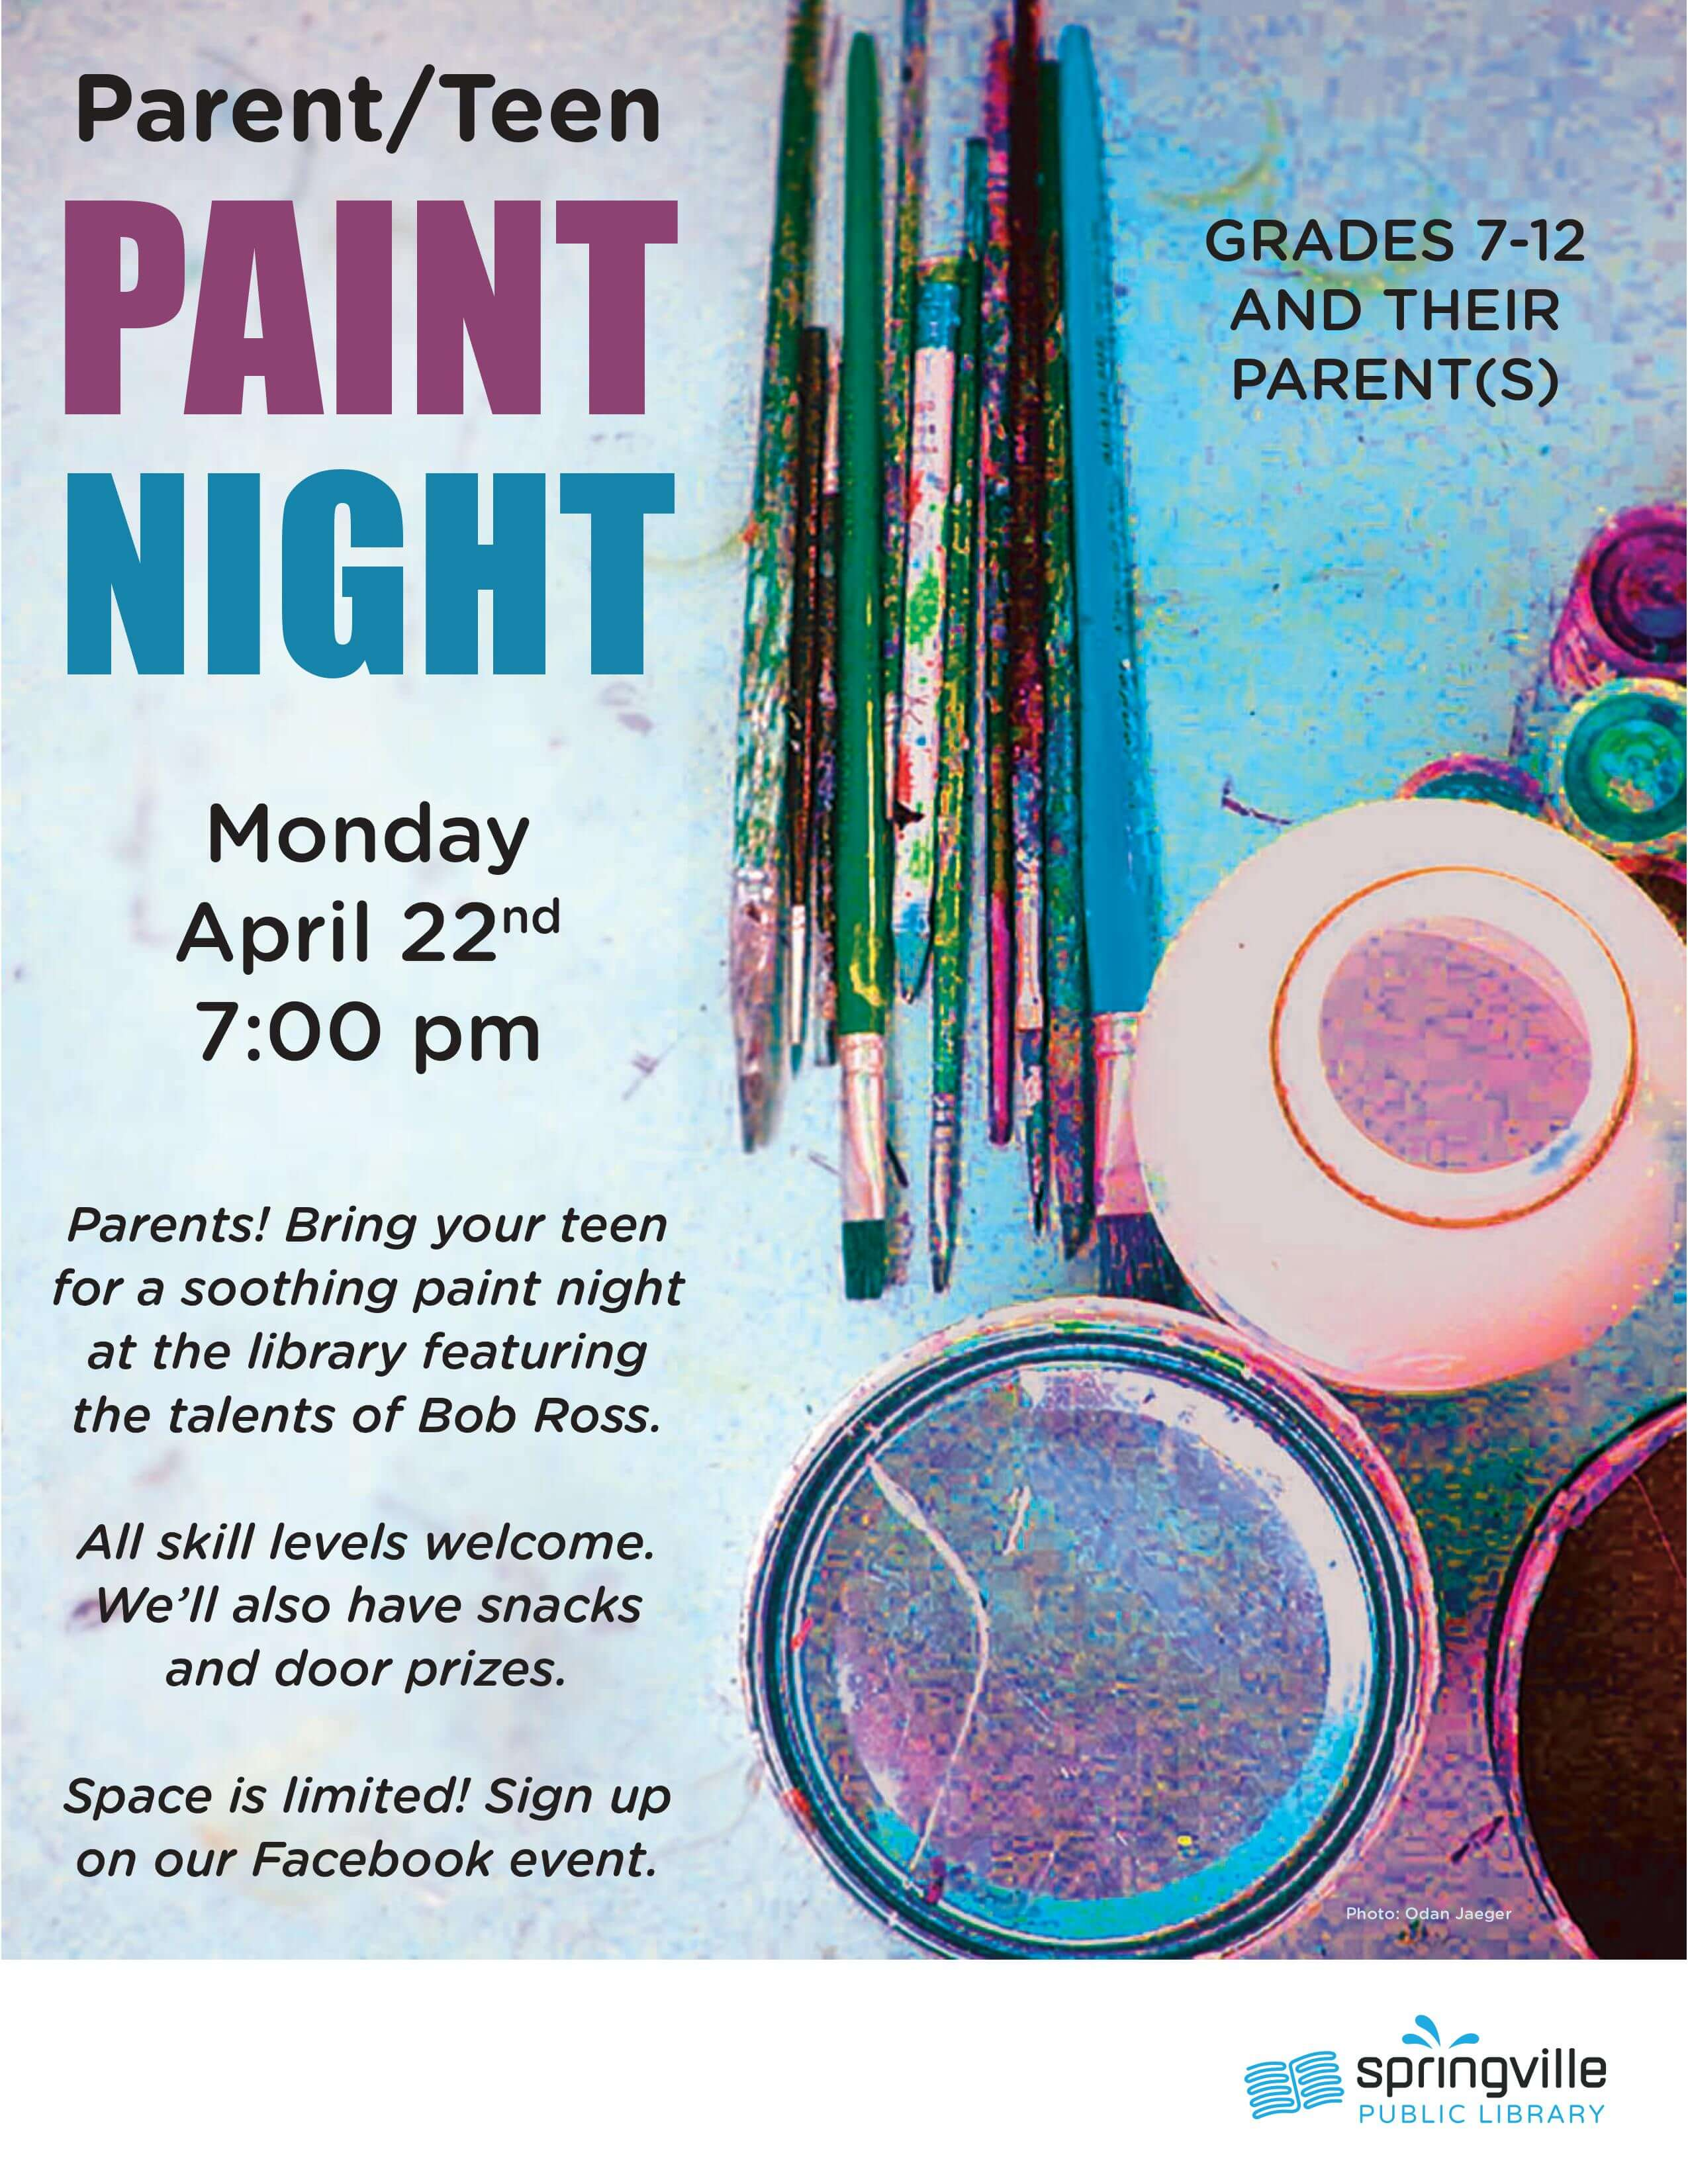 Parent/Teen Paint Night @ Springville Public Library